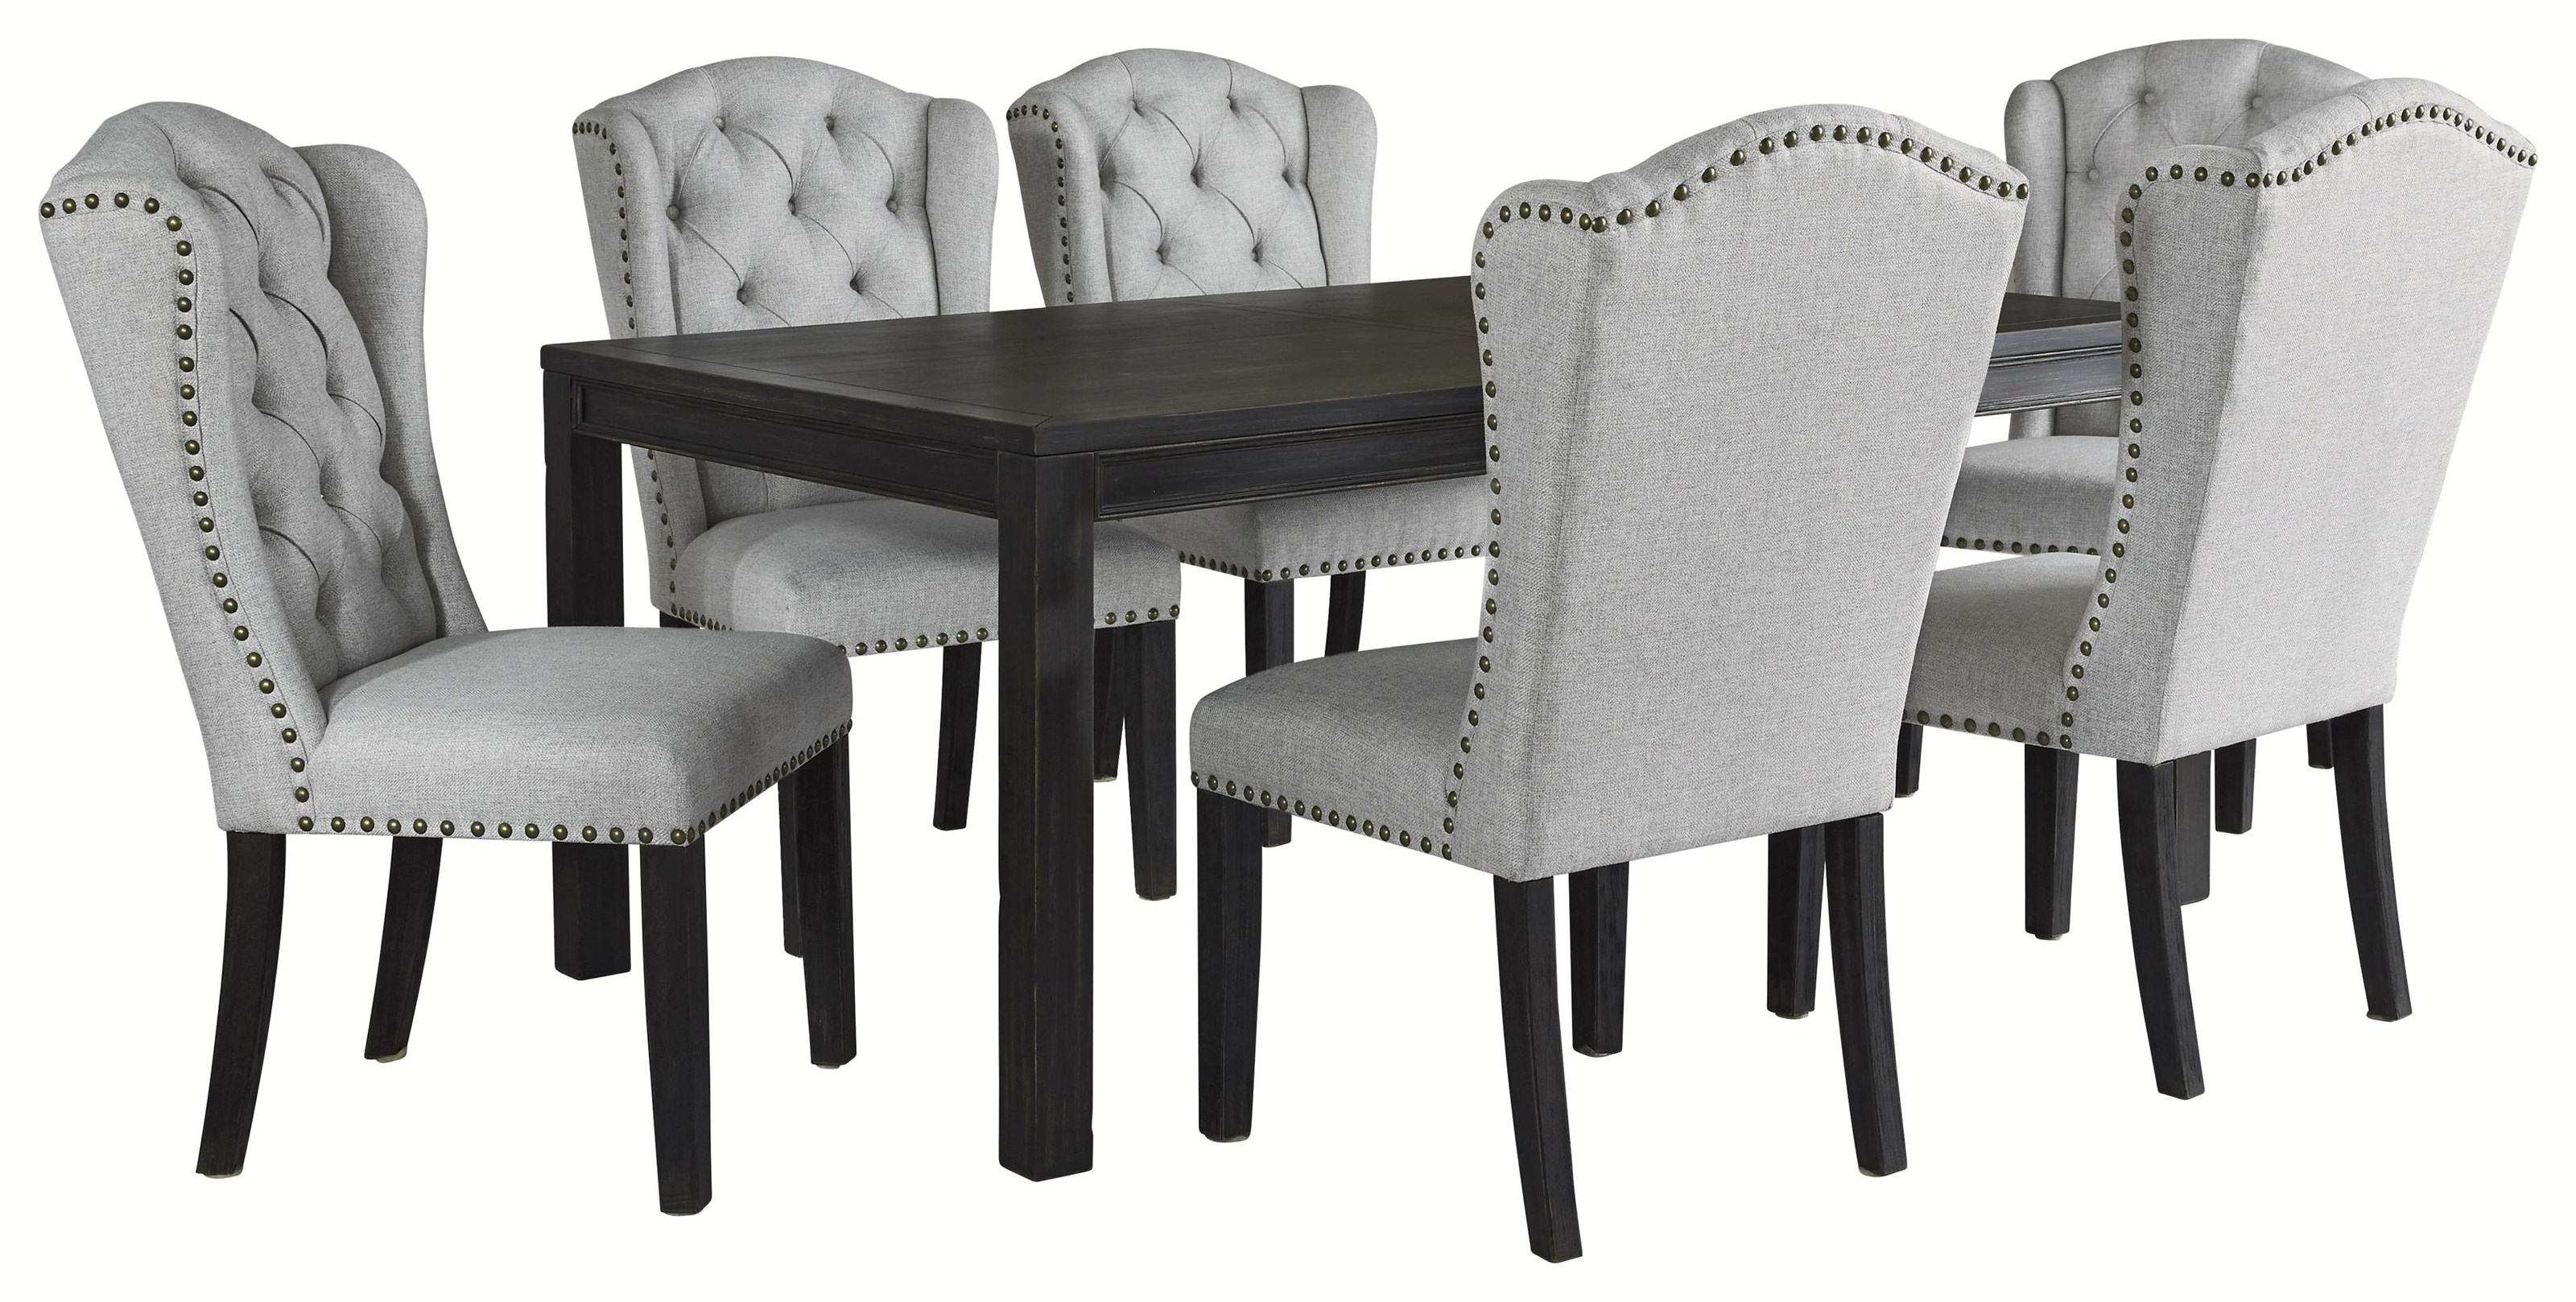 Picture of: Ashley Furniture Jeanette D702 25 6×01 7 Pc Rect Table And 6 Uph Side Chairs Set Sam Levitz Furniture Dining 7 Or More Piece Sets